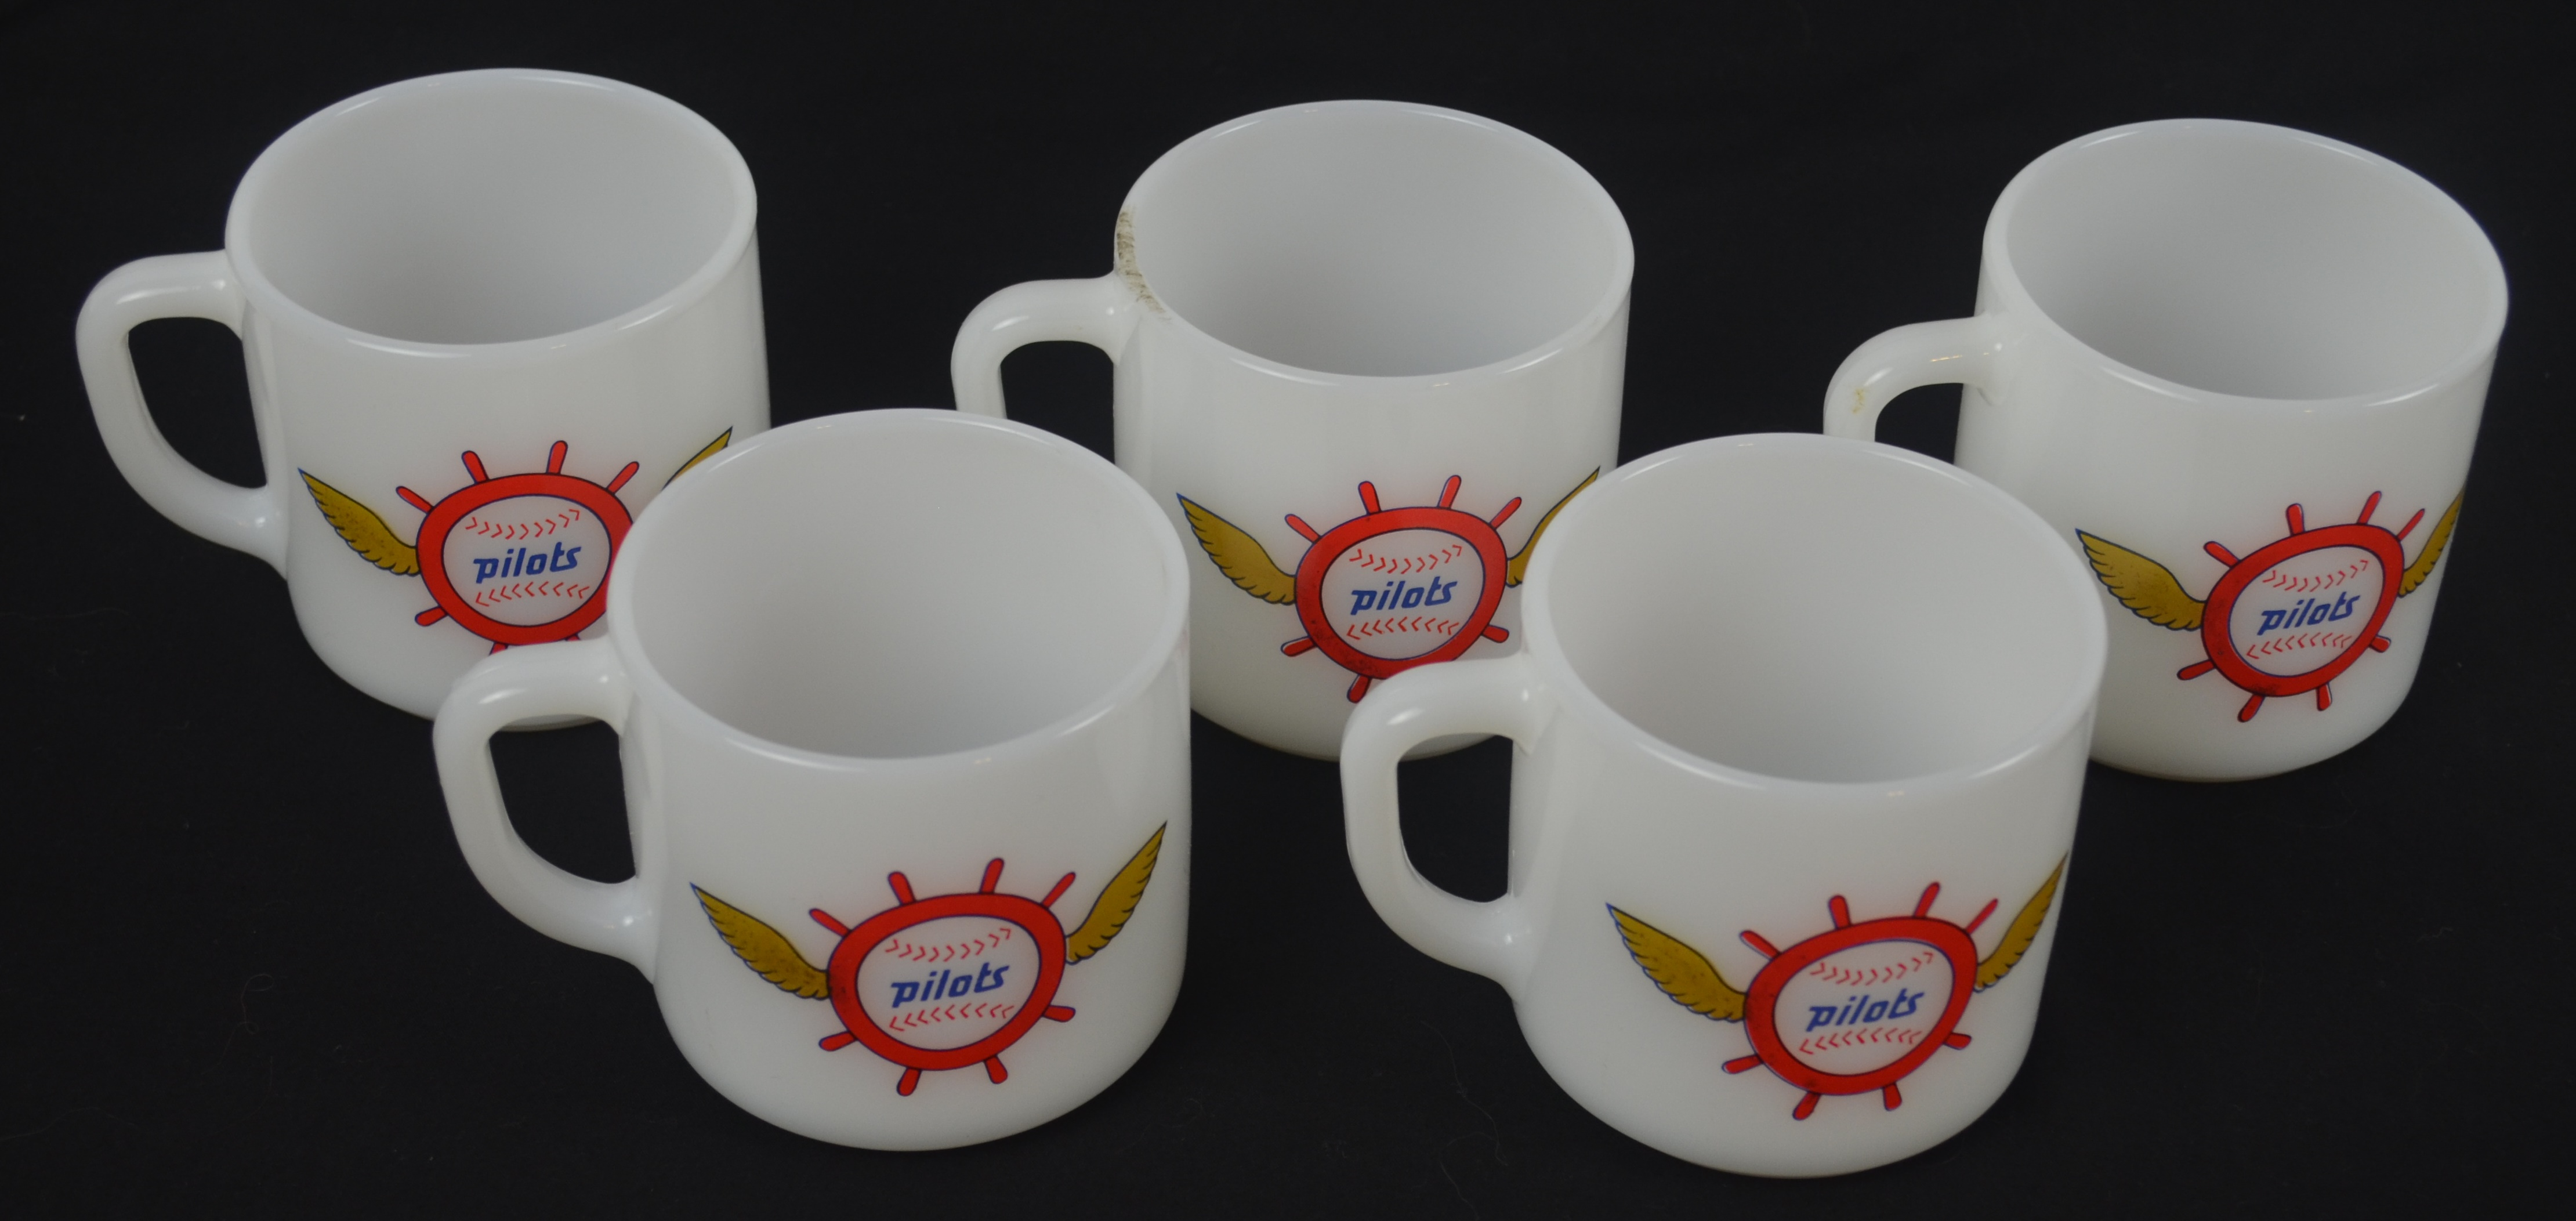 Original Coffee Mugs Lot Detail Seattle Pilots 1969 Collection Of 5 Coffee